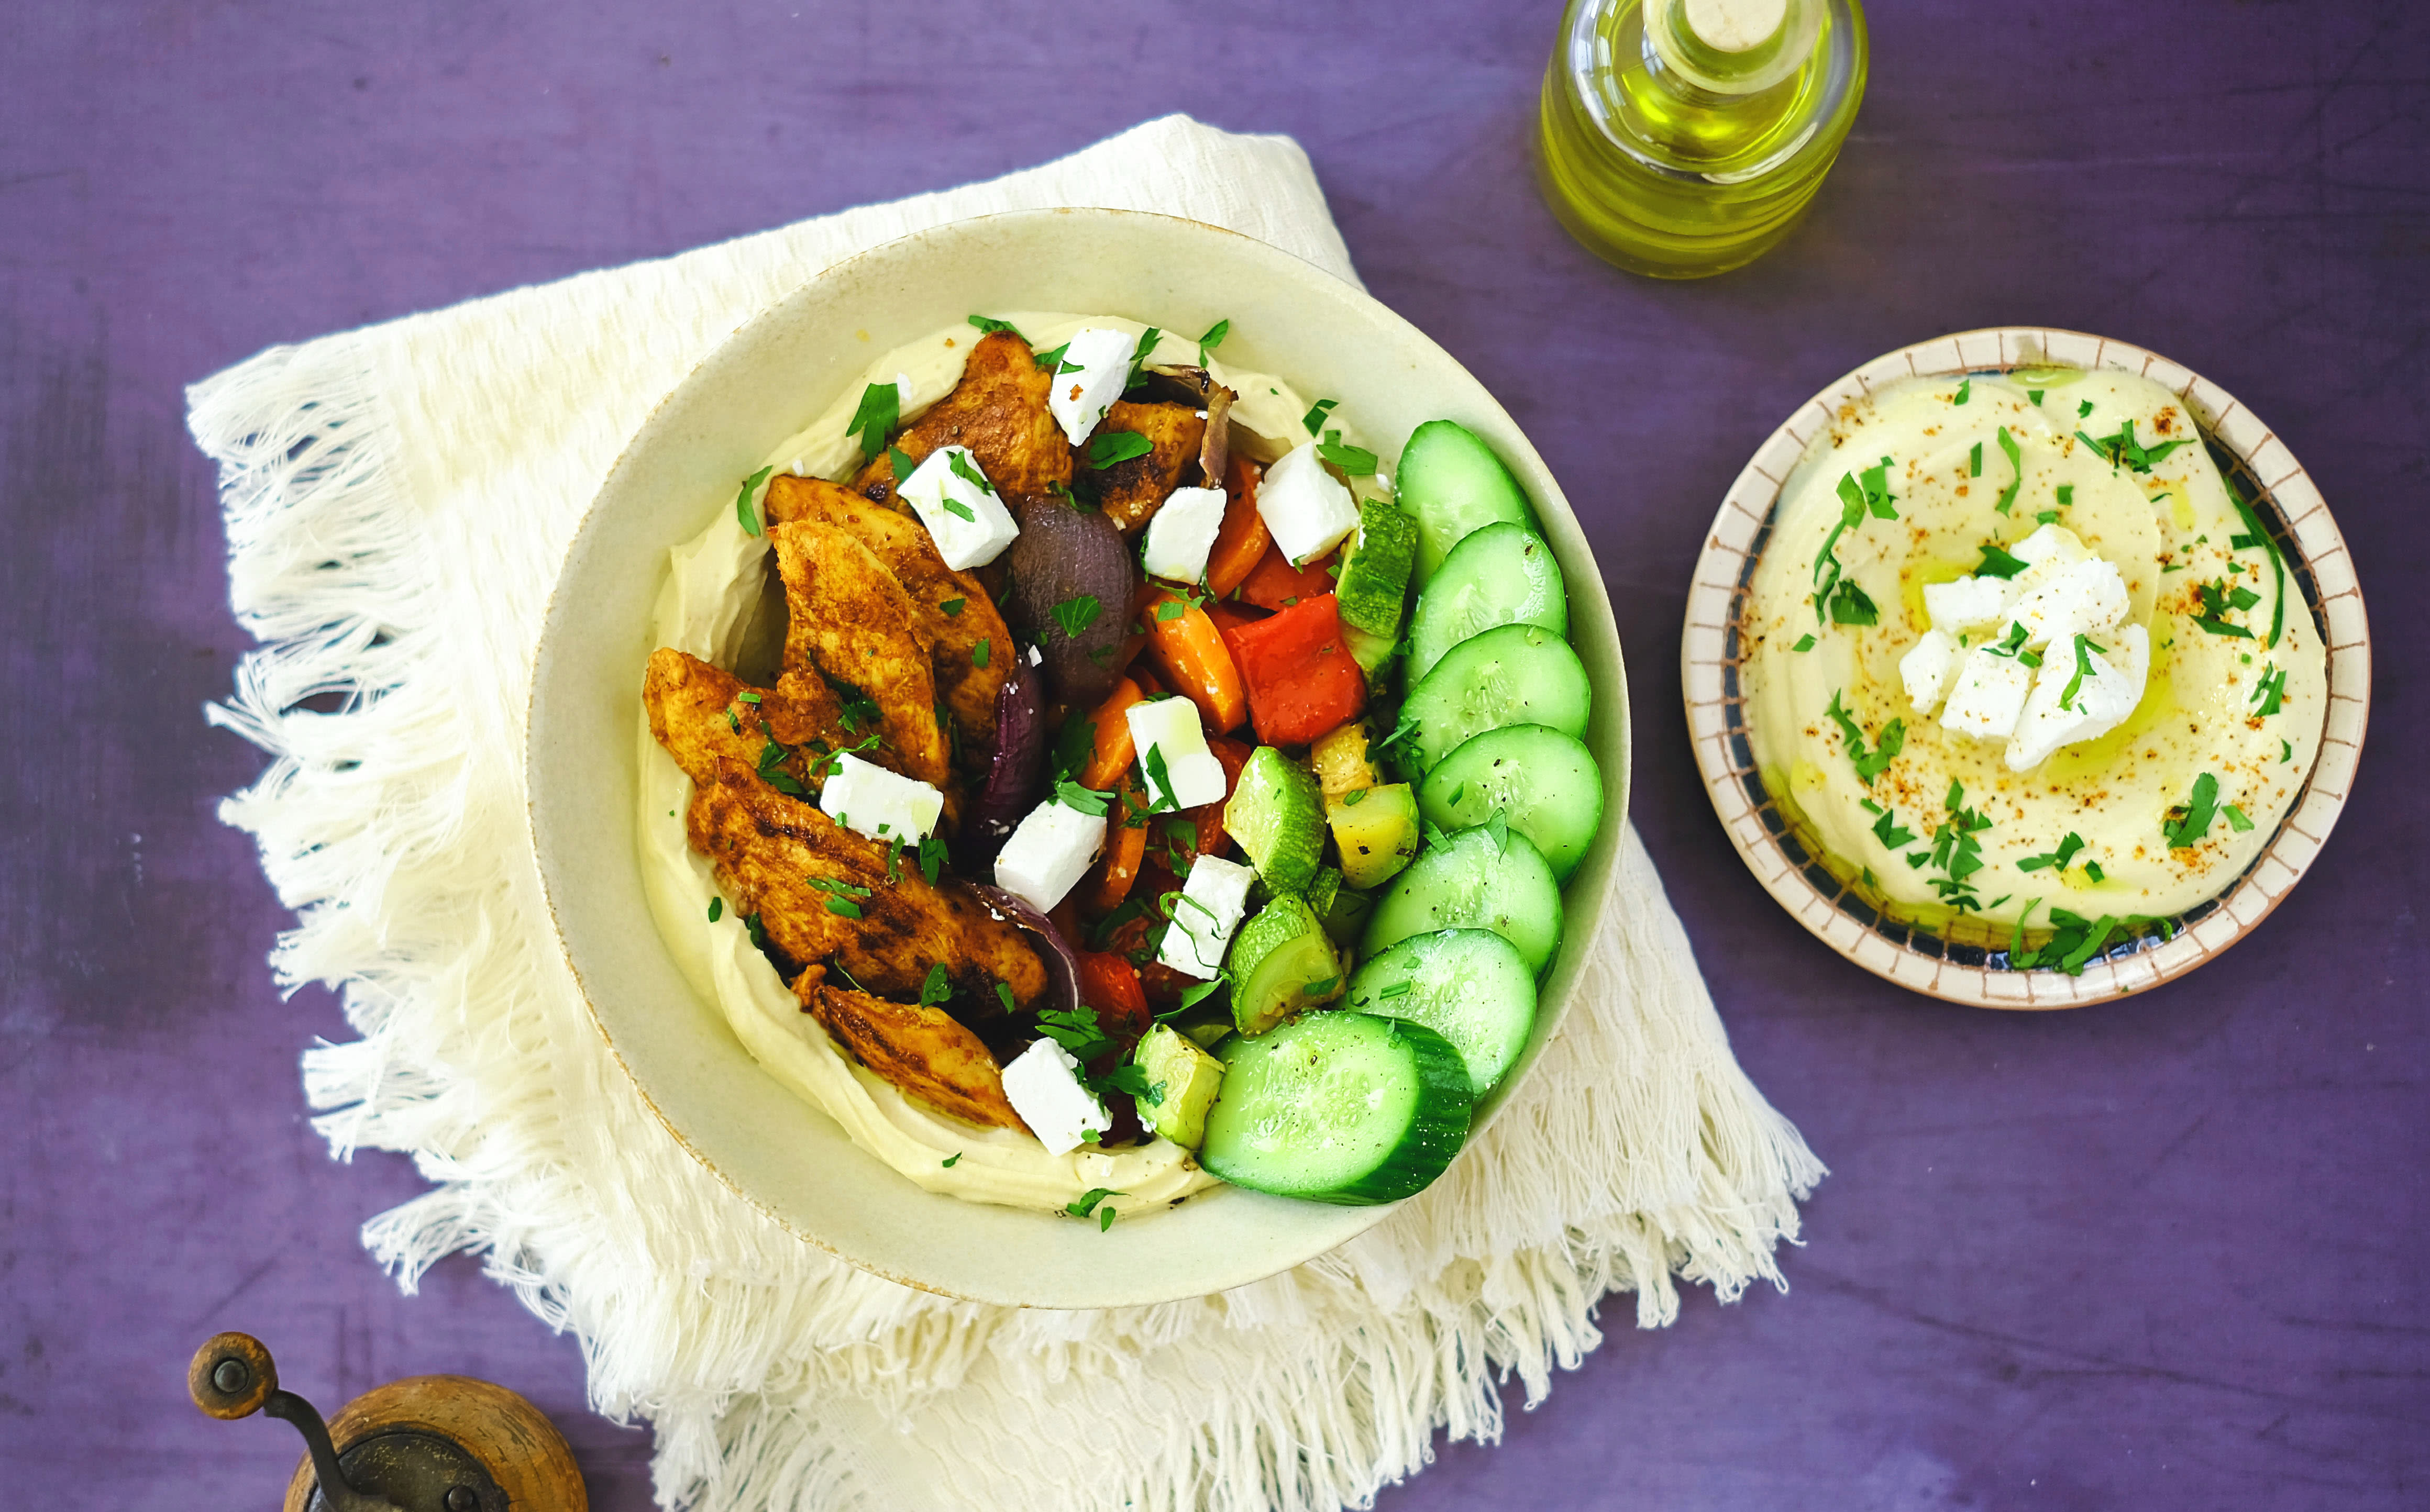 Roasted Vegetable and Chicken Shawarma Bowl with Hummus